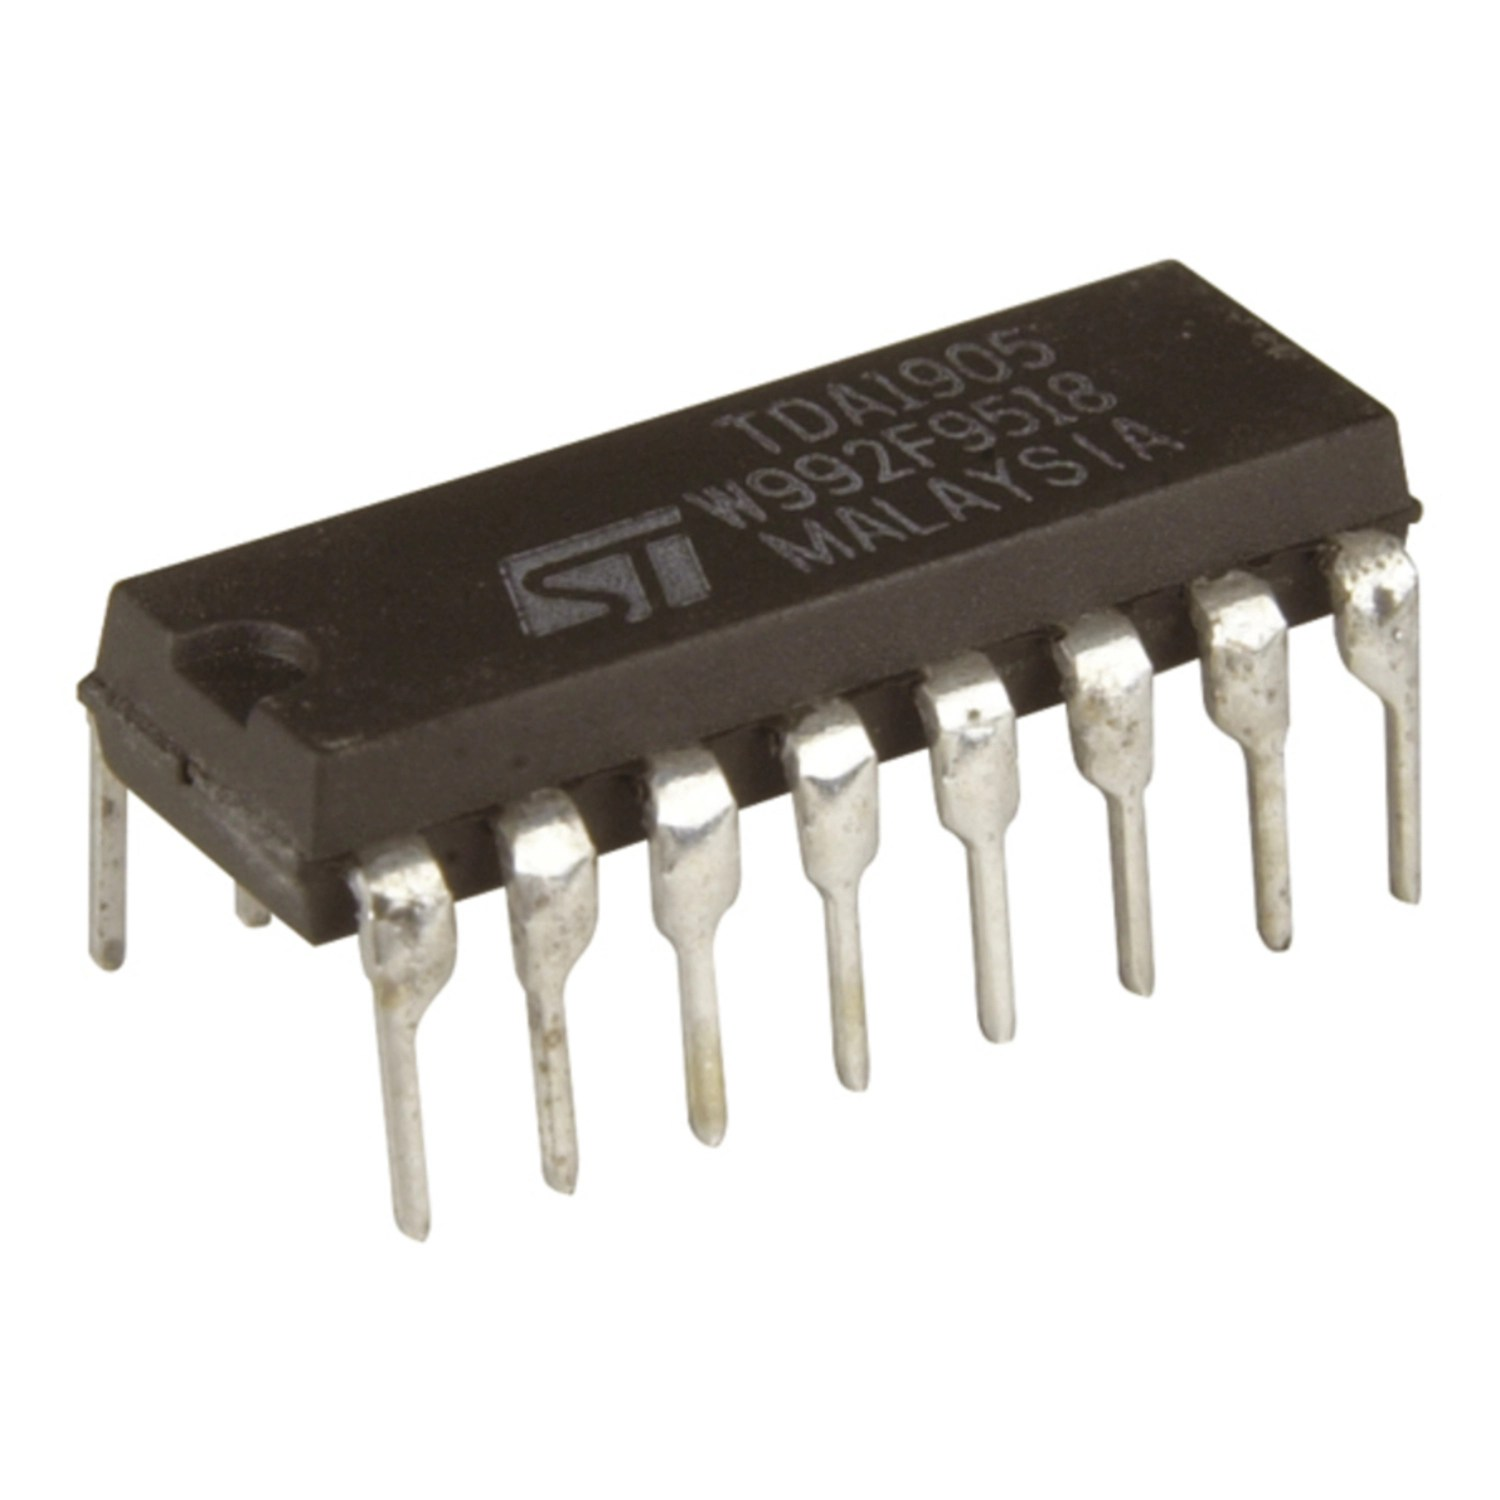 hight resolution of 74hc42 bcd to decimal decoder ic